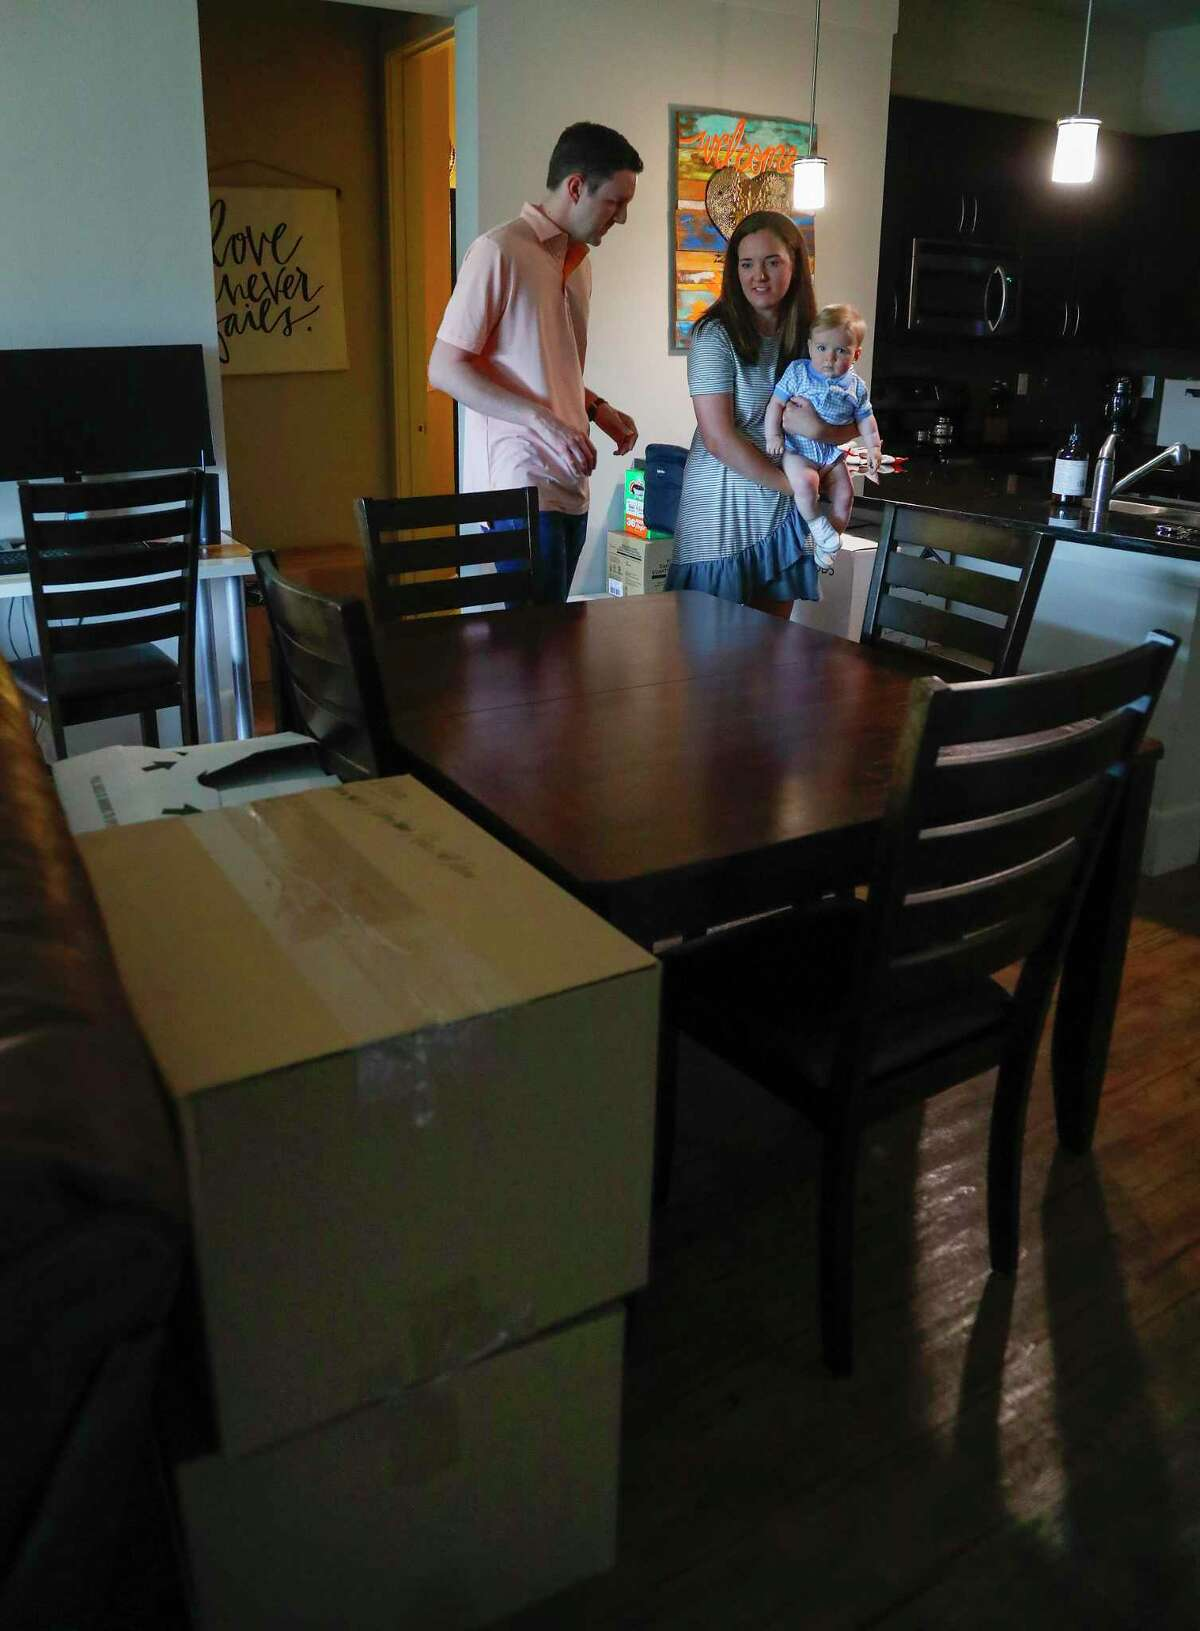 Nick and Aly O'Neal, with their 8-month-old son, Shepherd, work around moving boxes as they are preparing to close on a house in Sugar Land and will be moving out of their apartment, in Houston, Monday, April 19, 2021. he first time home buyers are paying well over the asking price for the house, which was listed for $255,000 and drew 22 offers shortly after hitting the market.